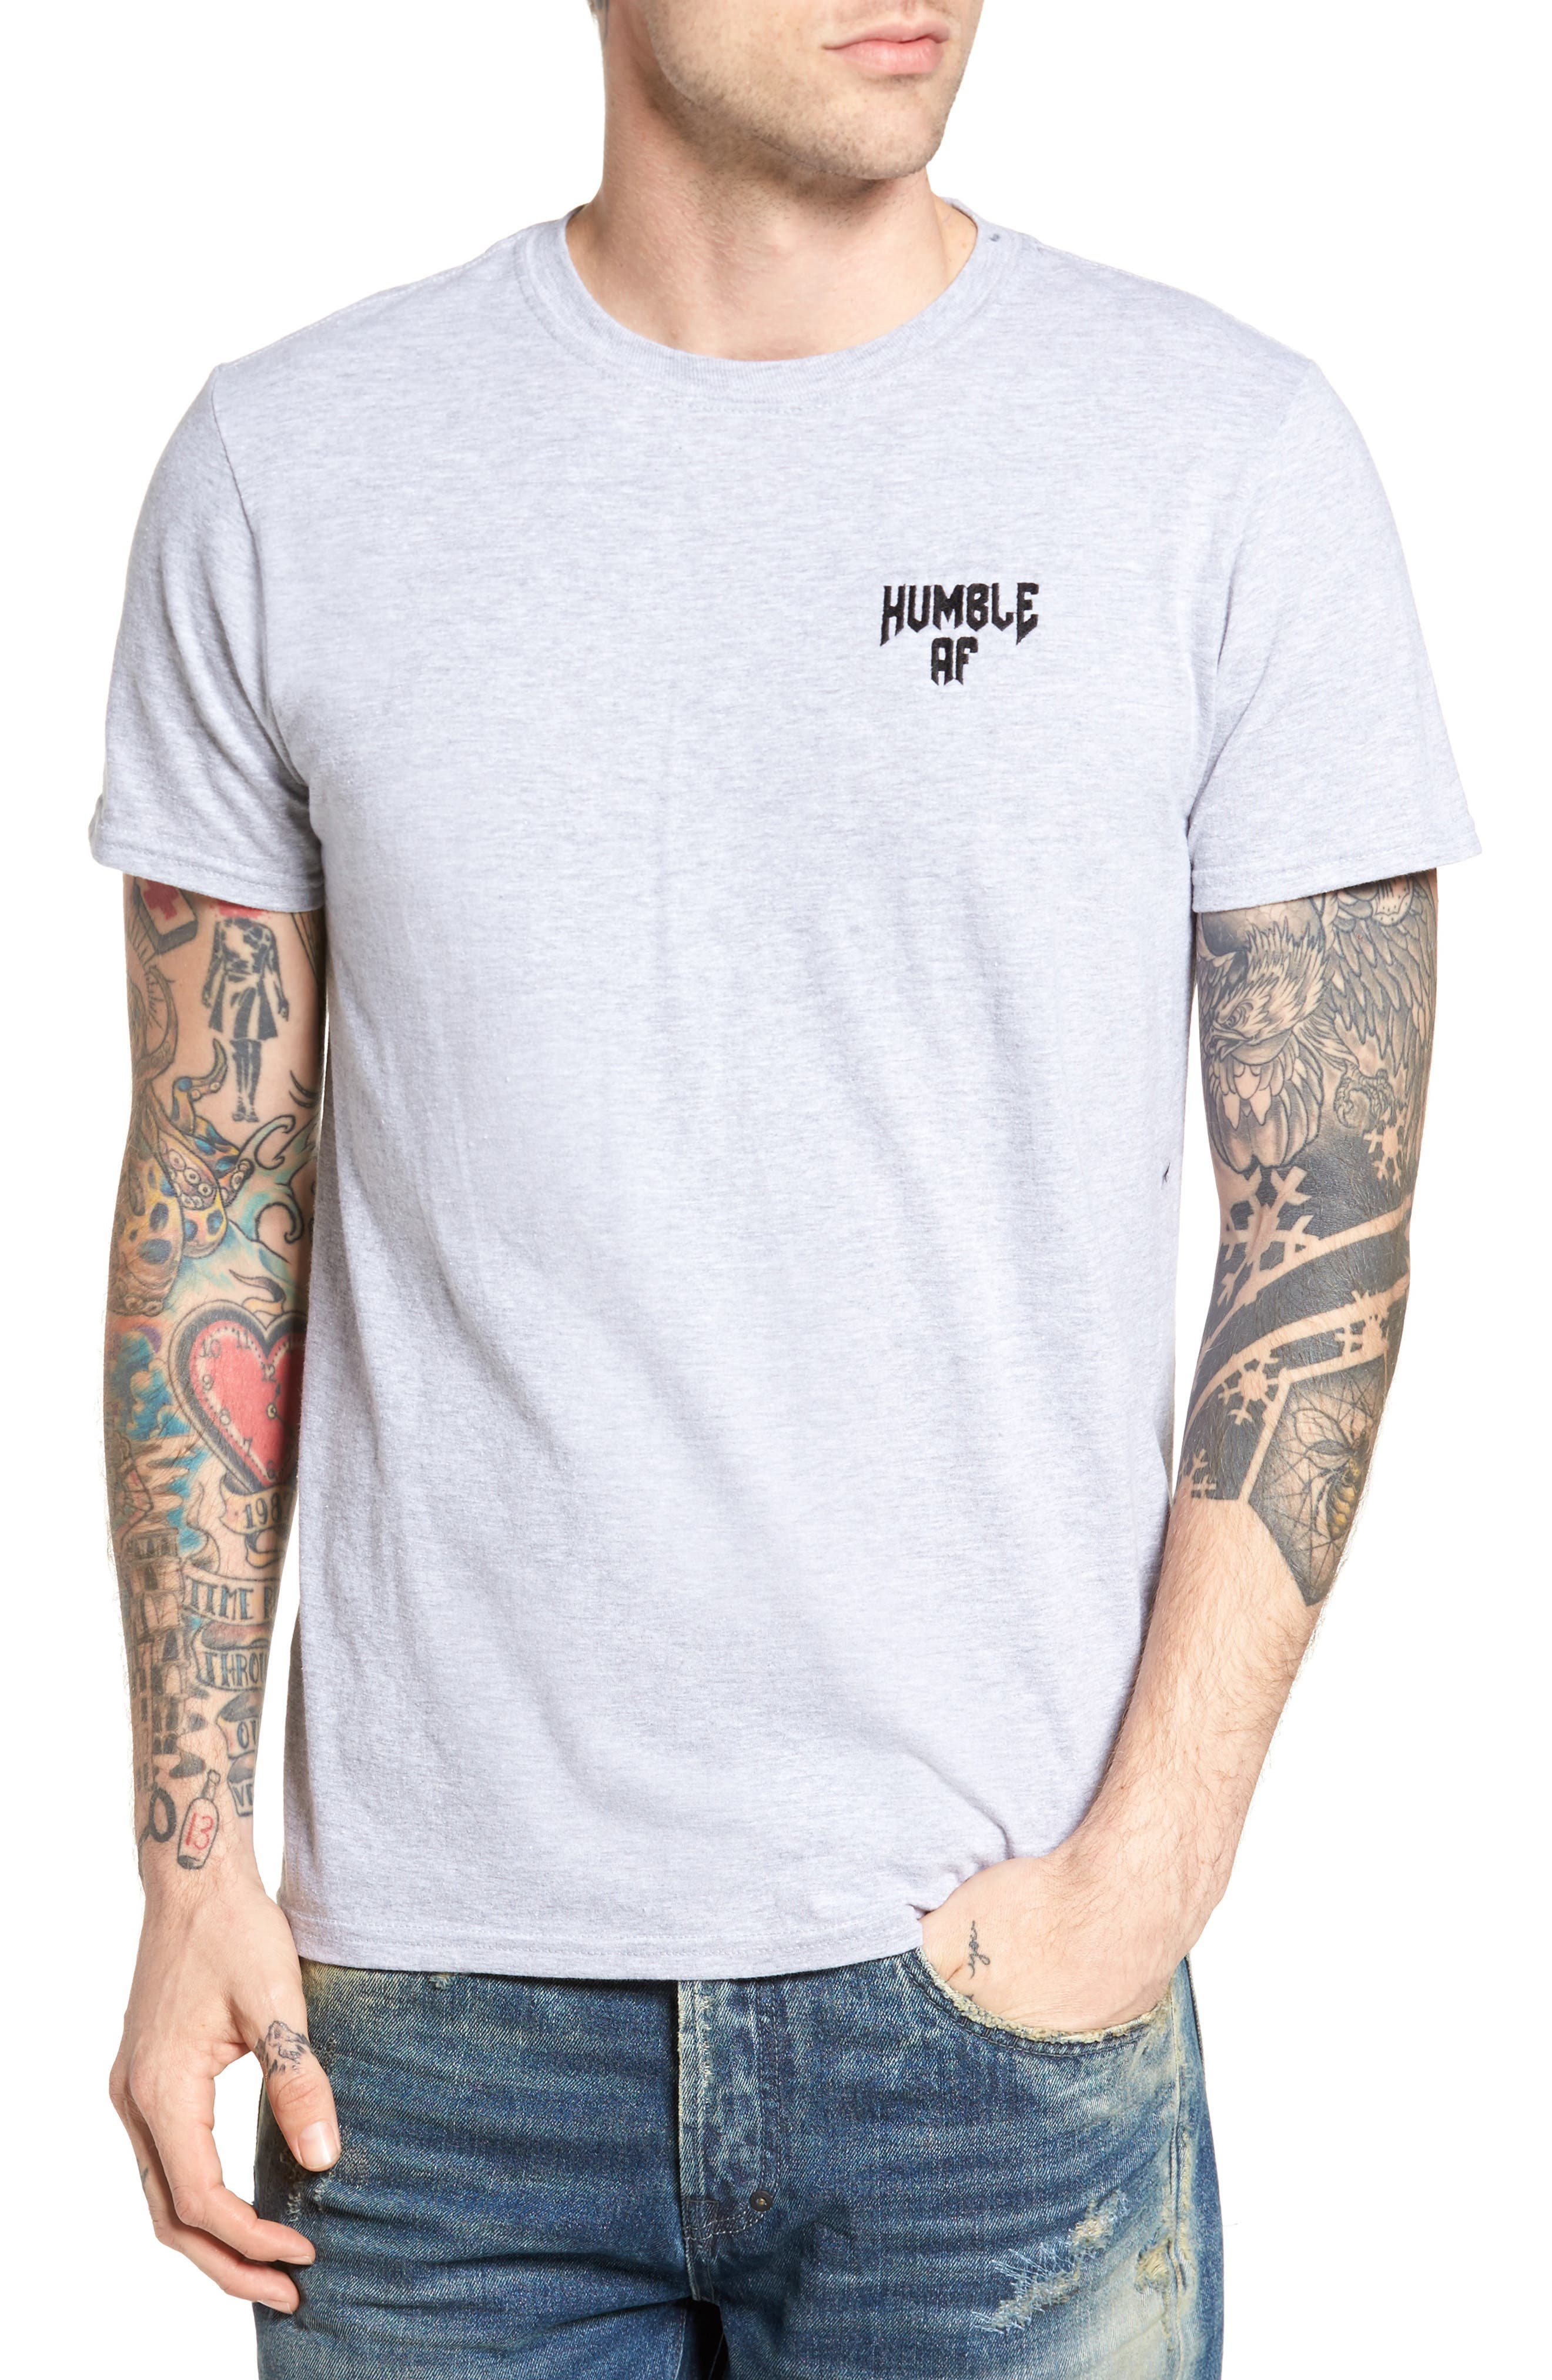 Humble AF T-Shirt,                             Main thumbnail 1, color,                             Grey Heather Humble